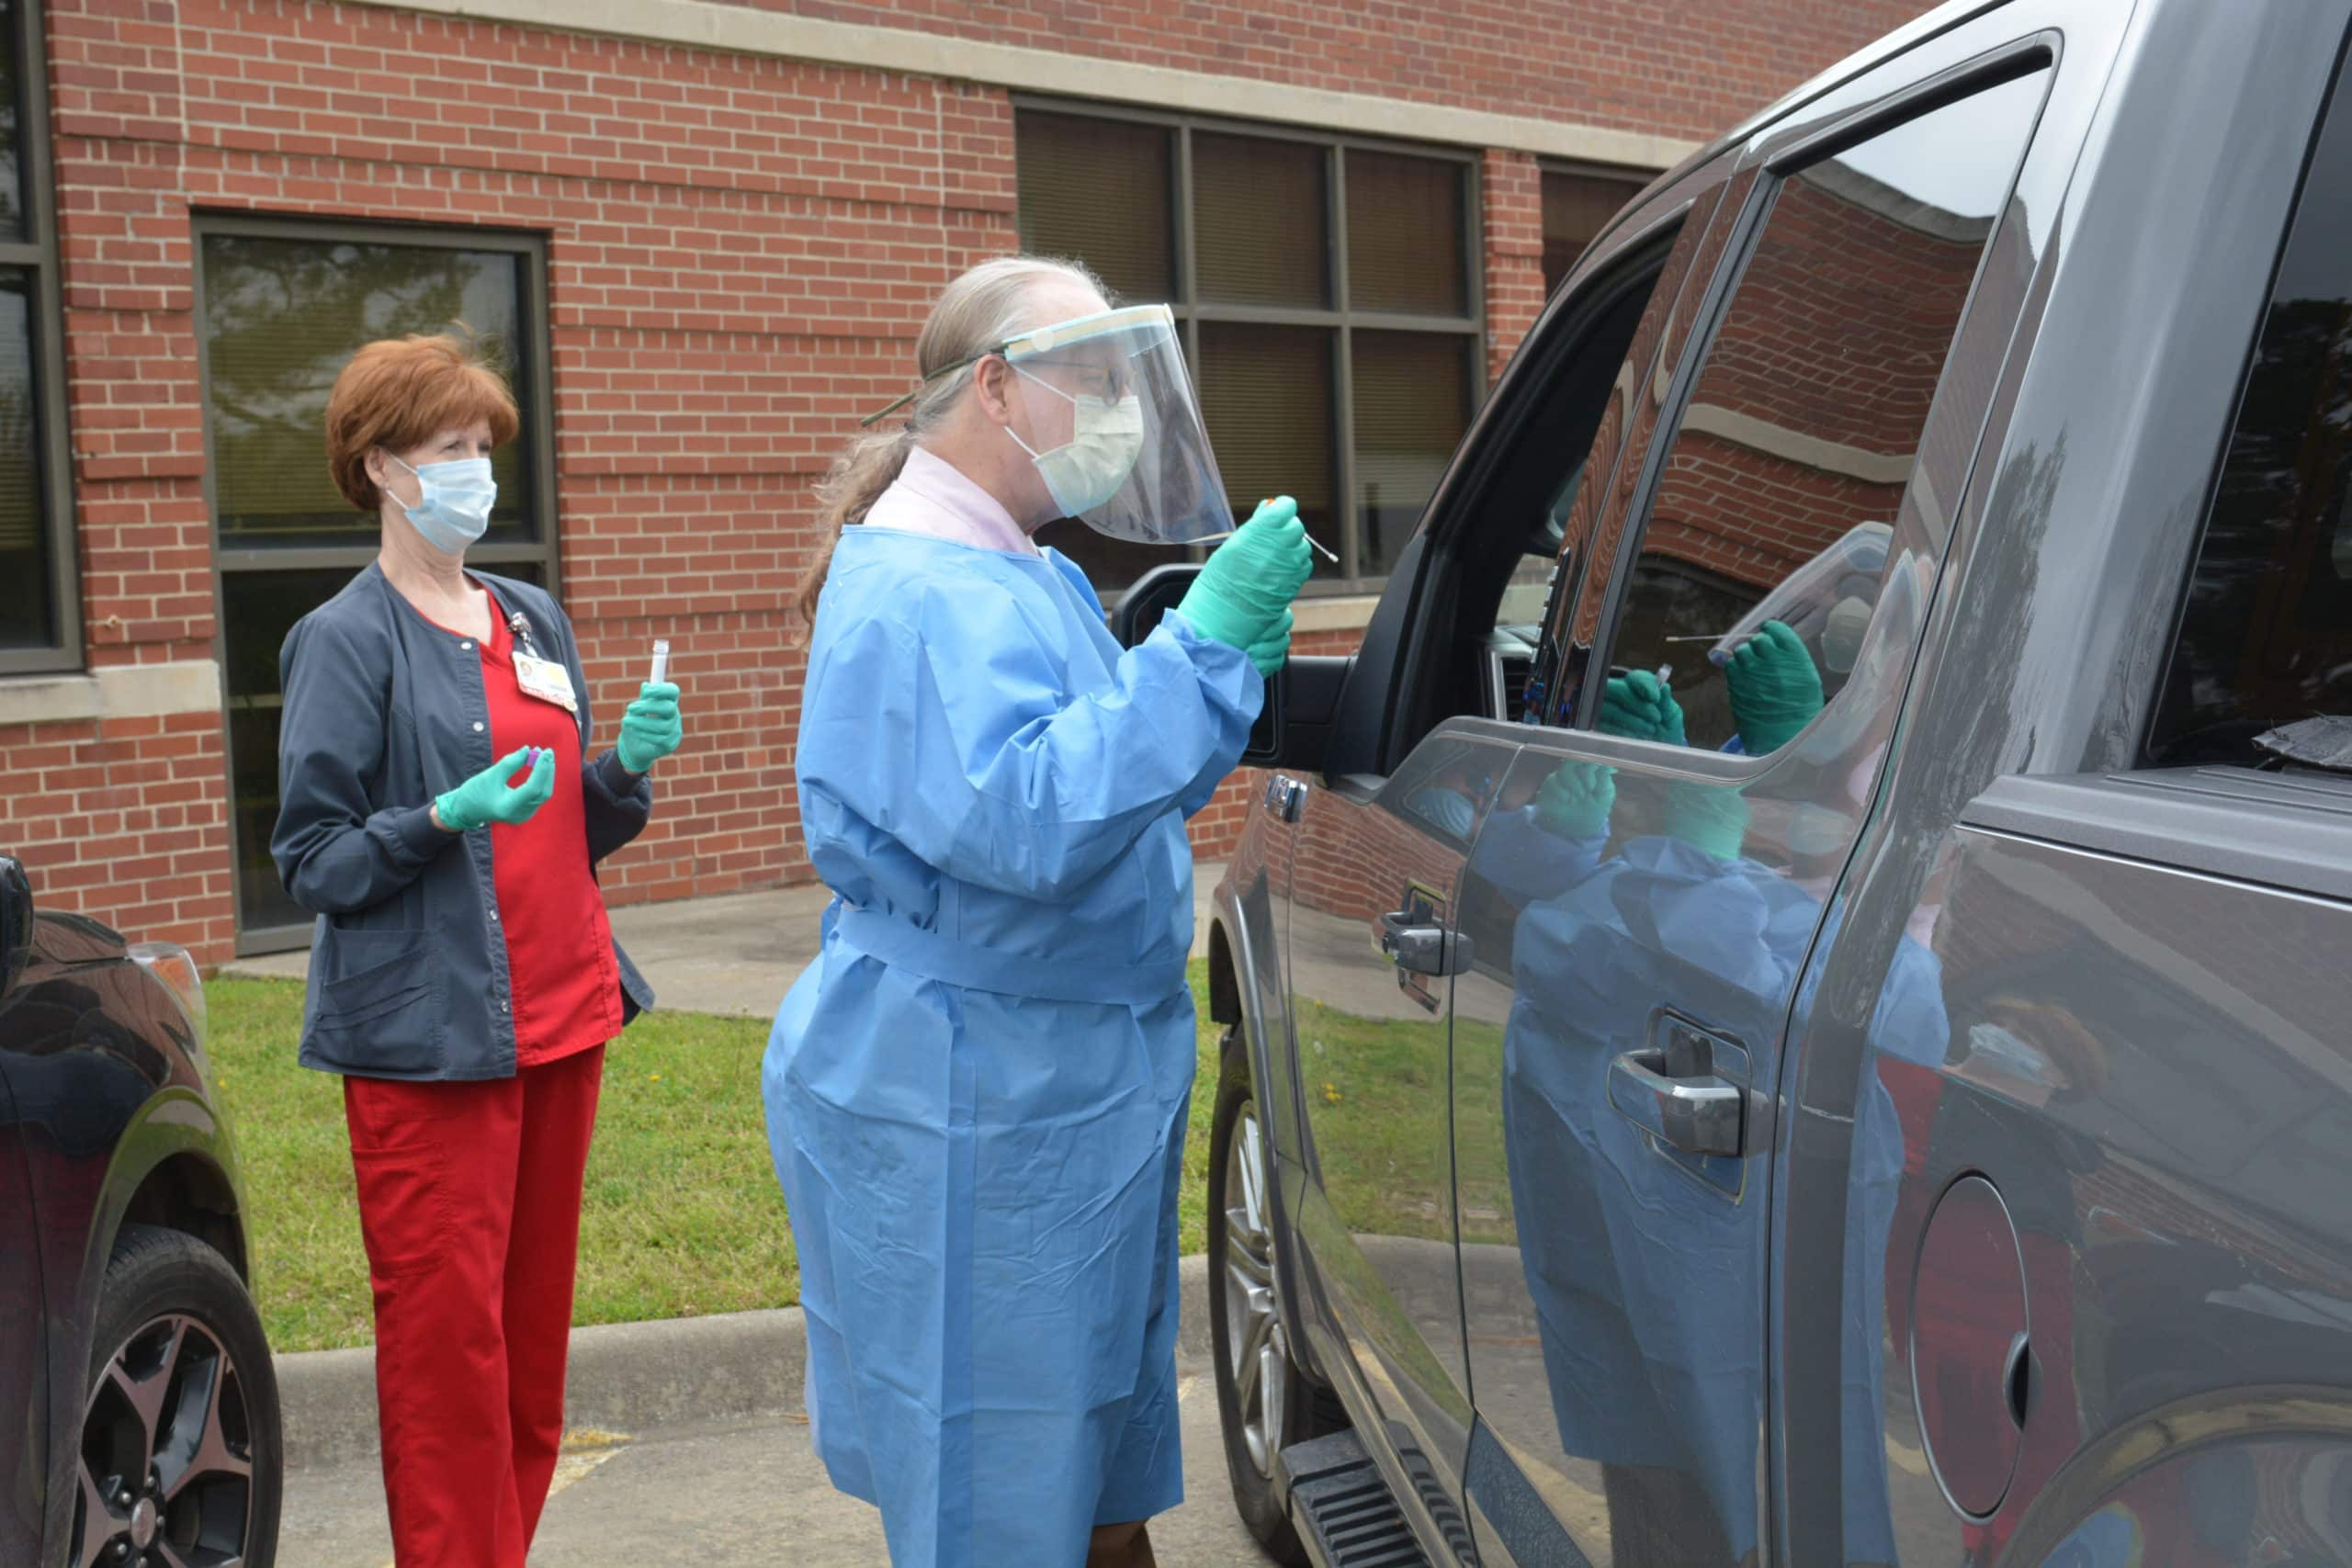 Ronald Brimberry, M.D., administers a COVID-19 test at a drive-thru testing site at the UAMS Northwest Regional Campus in Fayetteville.